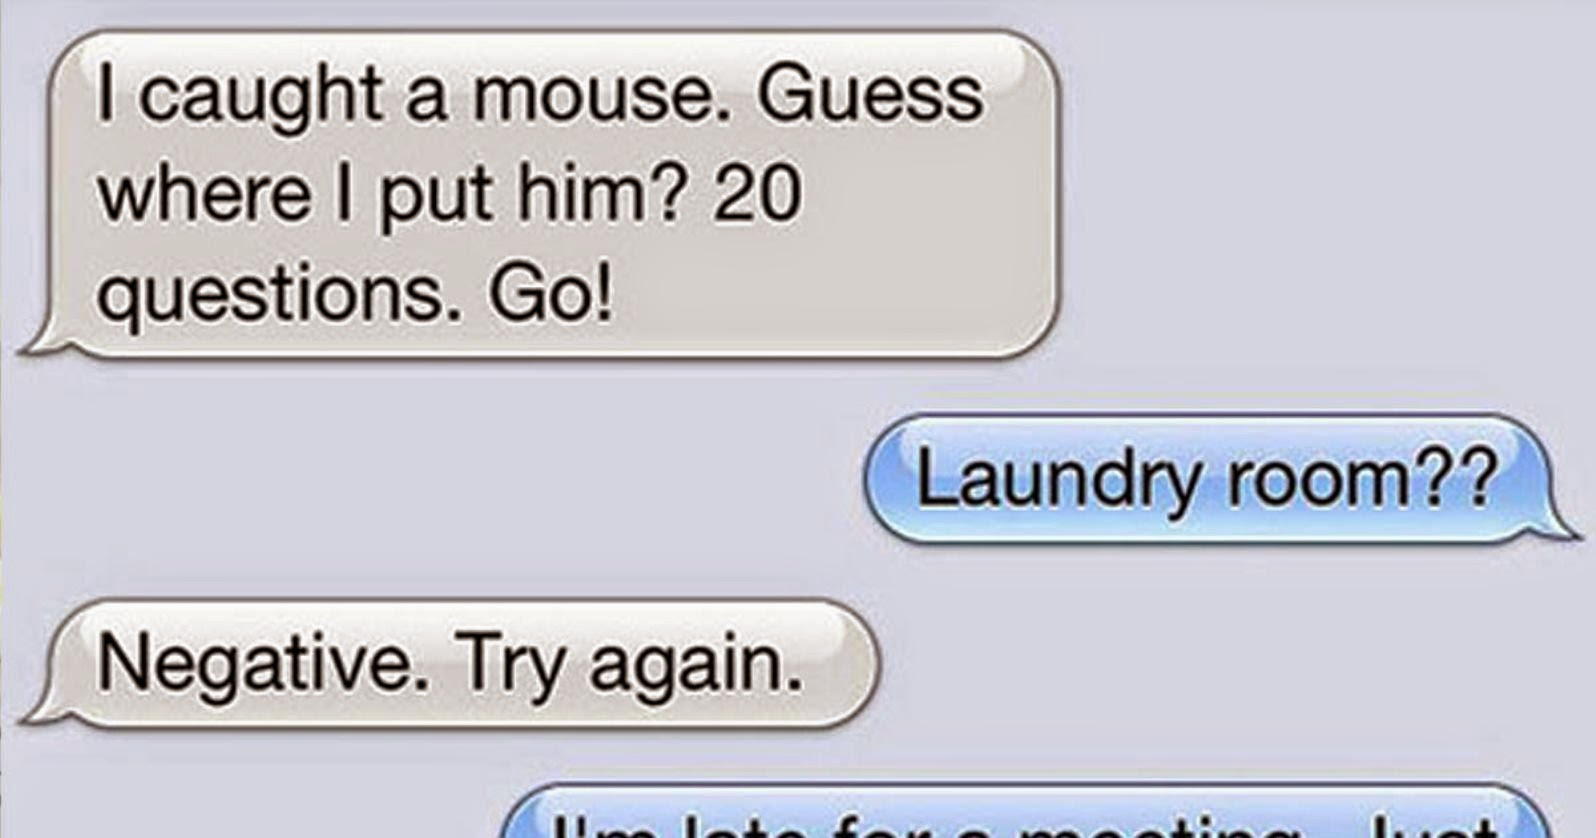 15 Text Messages A Cat Would Send If Cats Could Actually Text